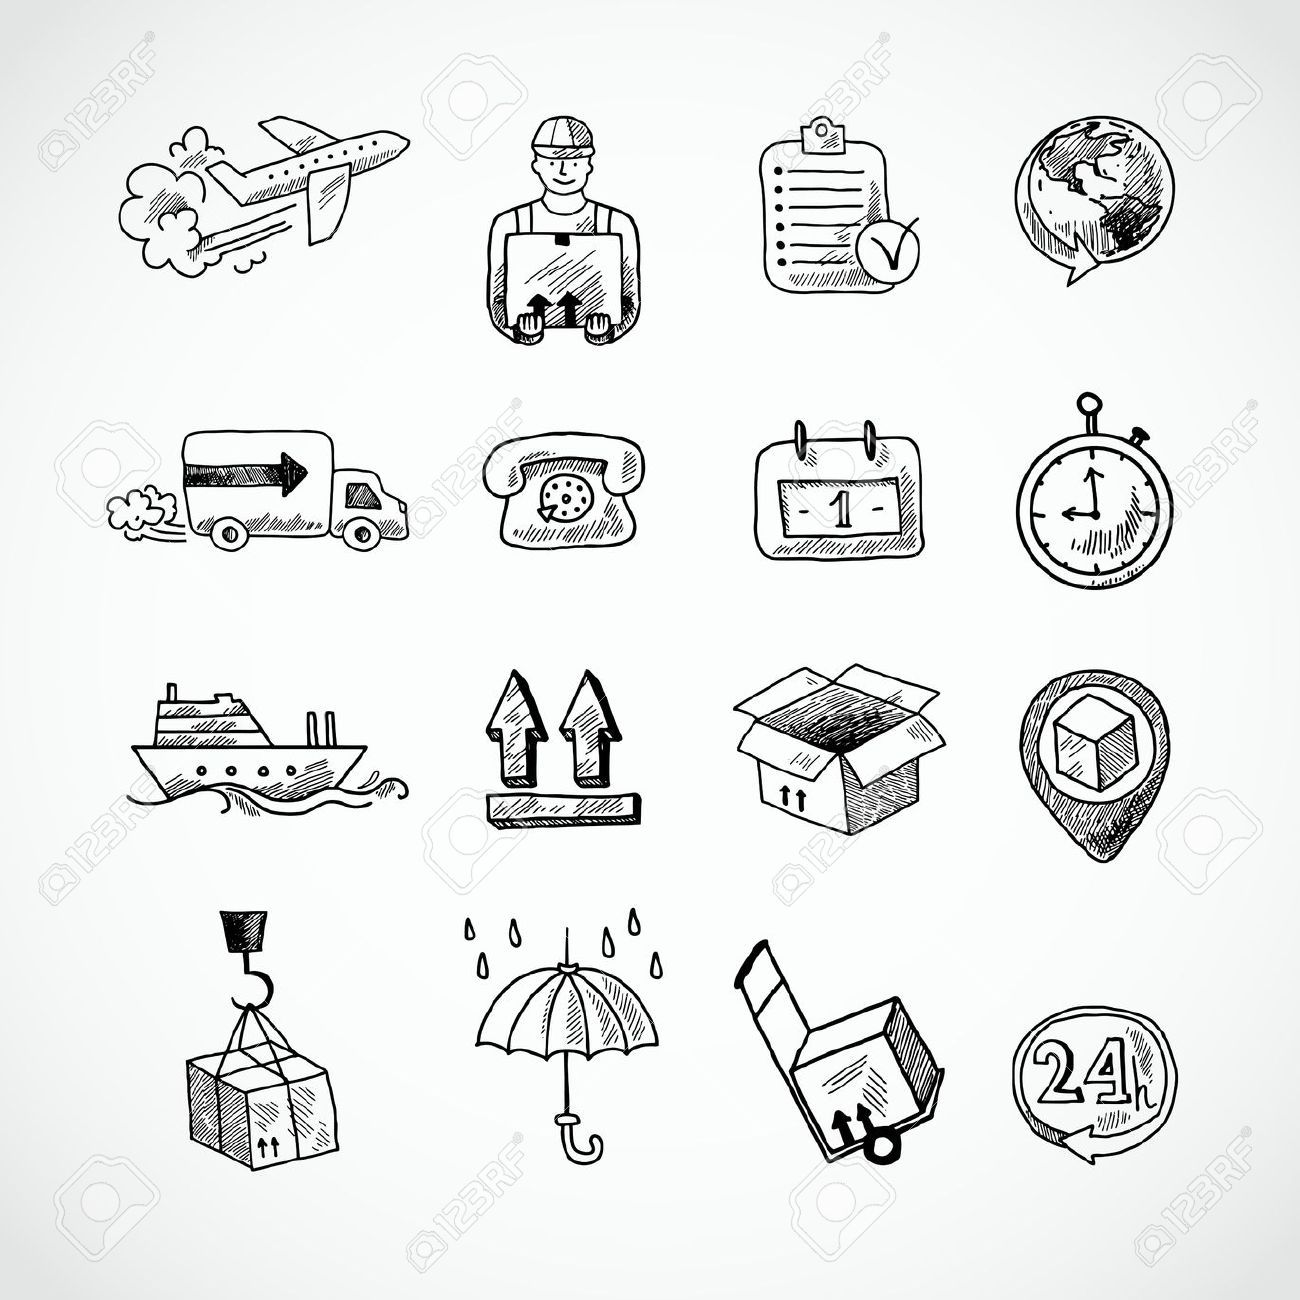 Supply Chain Cliparts Stock Vector And Royalty Free Supply Chain Illustrations Hand Drawn Icons How To Draw Hands Icon Set